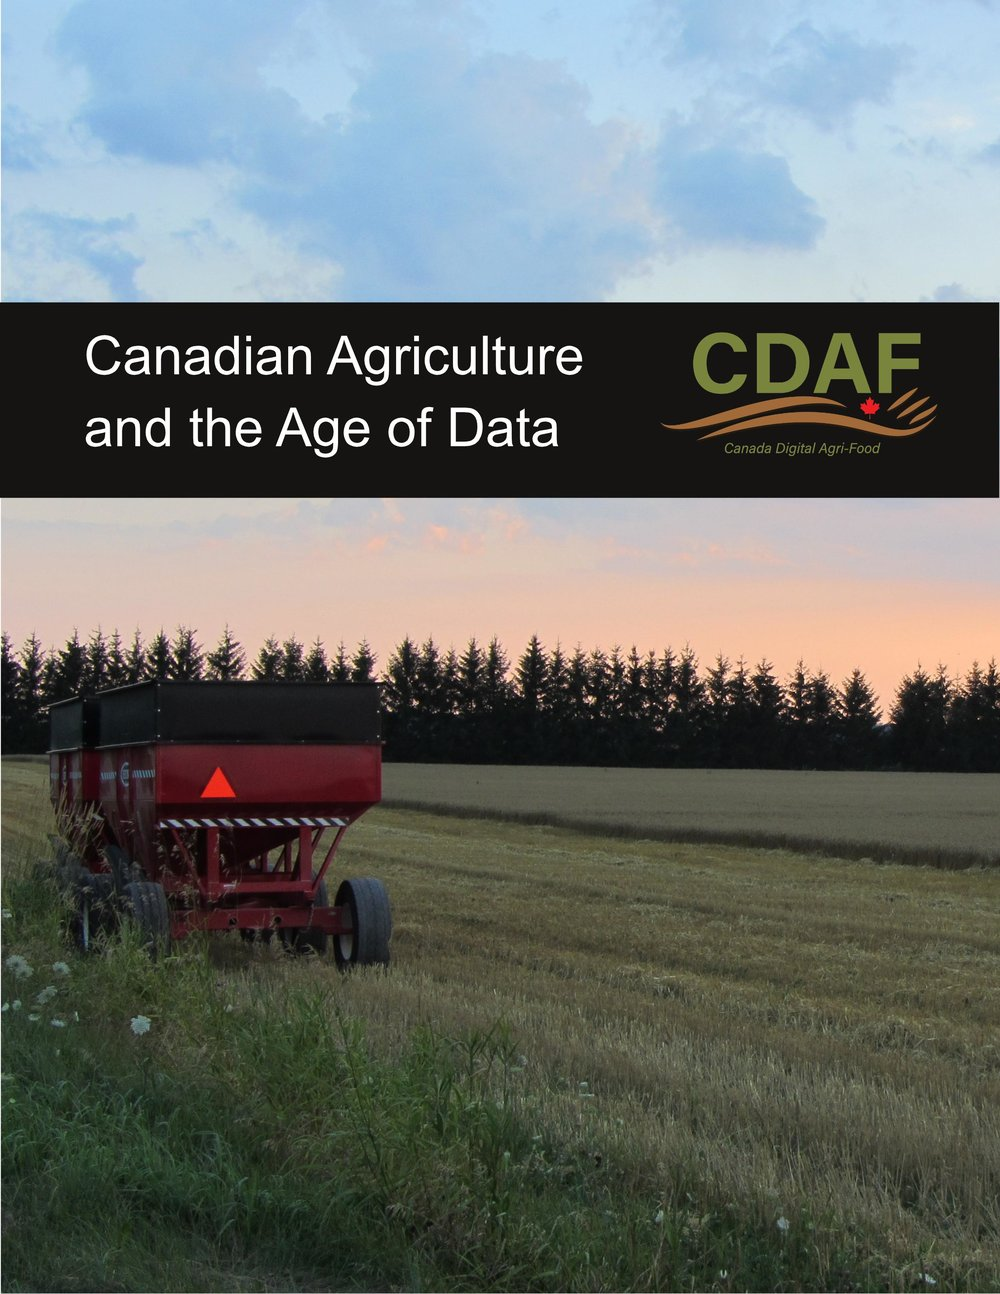 Download the whitepaper to learn about CDAF, AgBox and digital technologies.